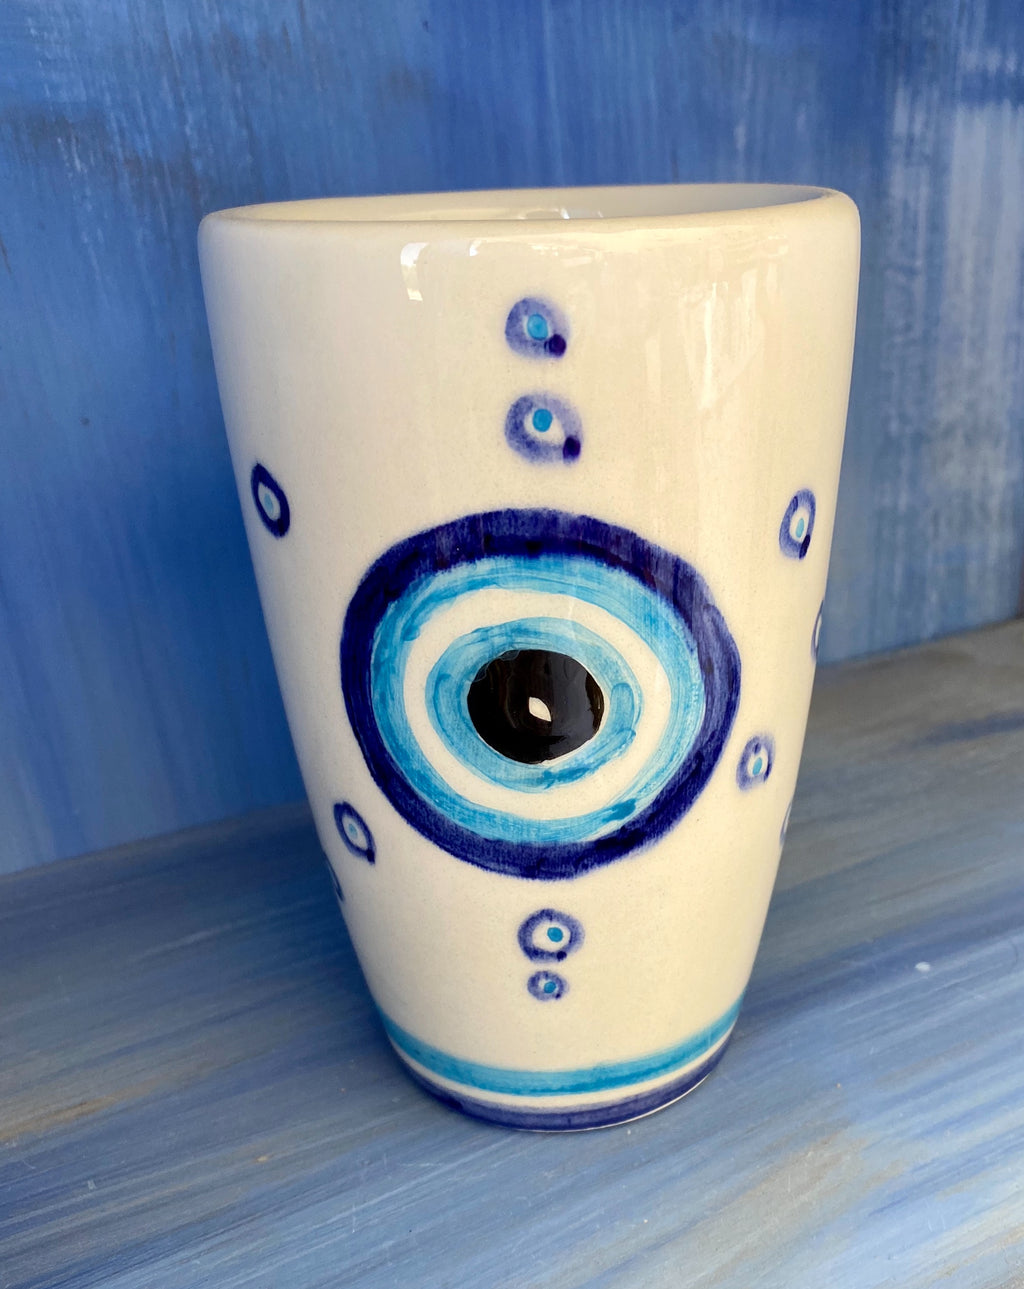 Ceramic mug with evil eye